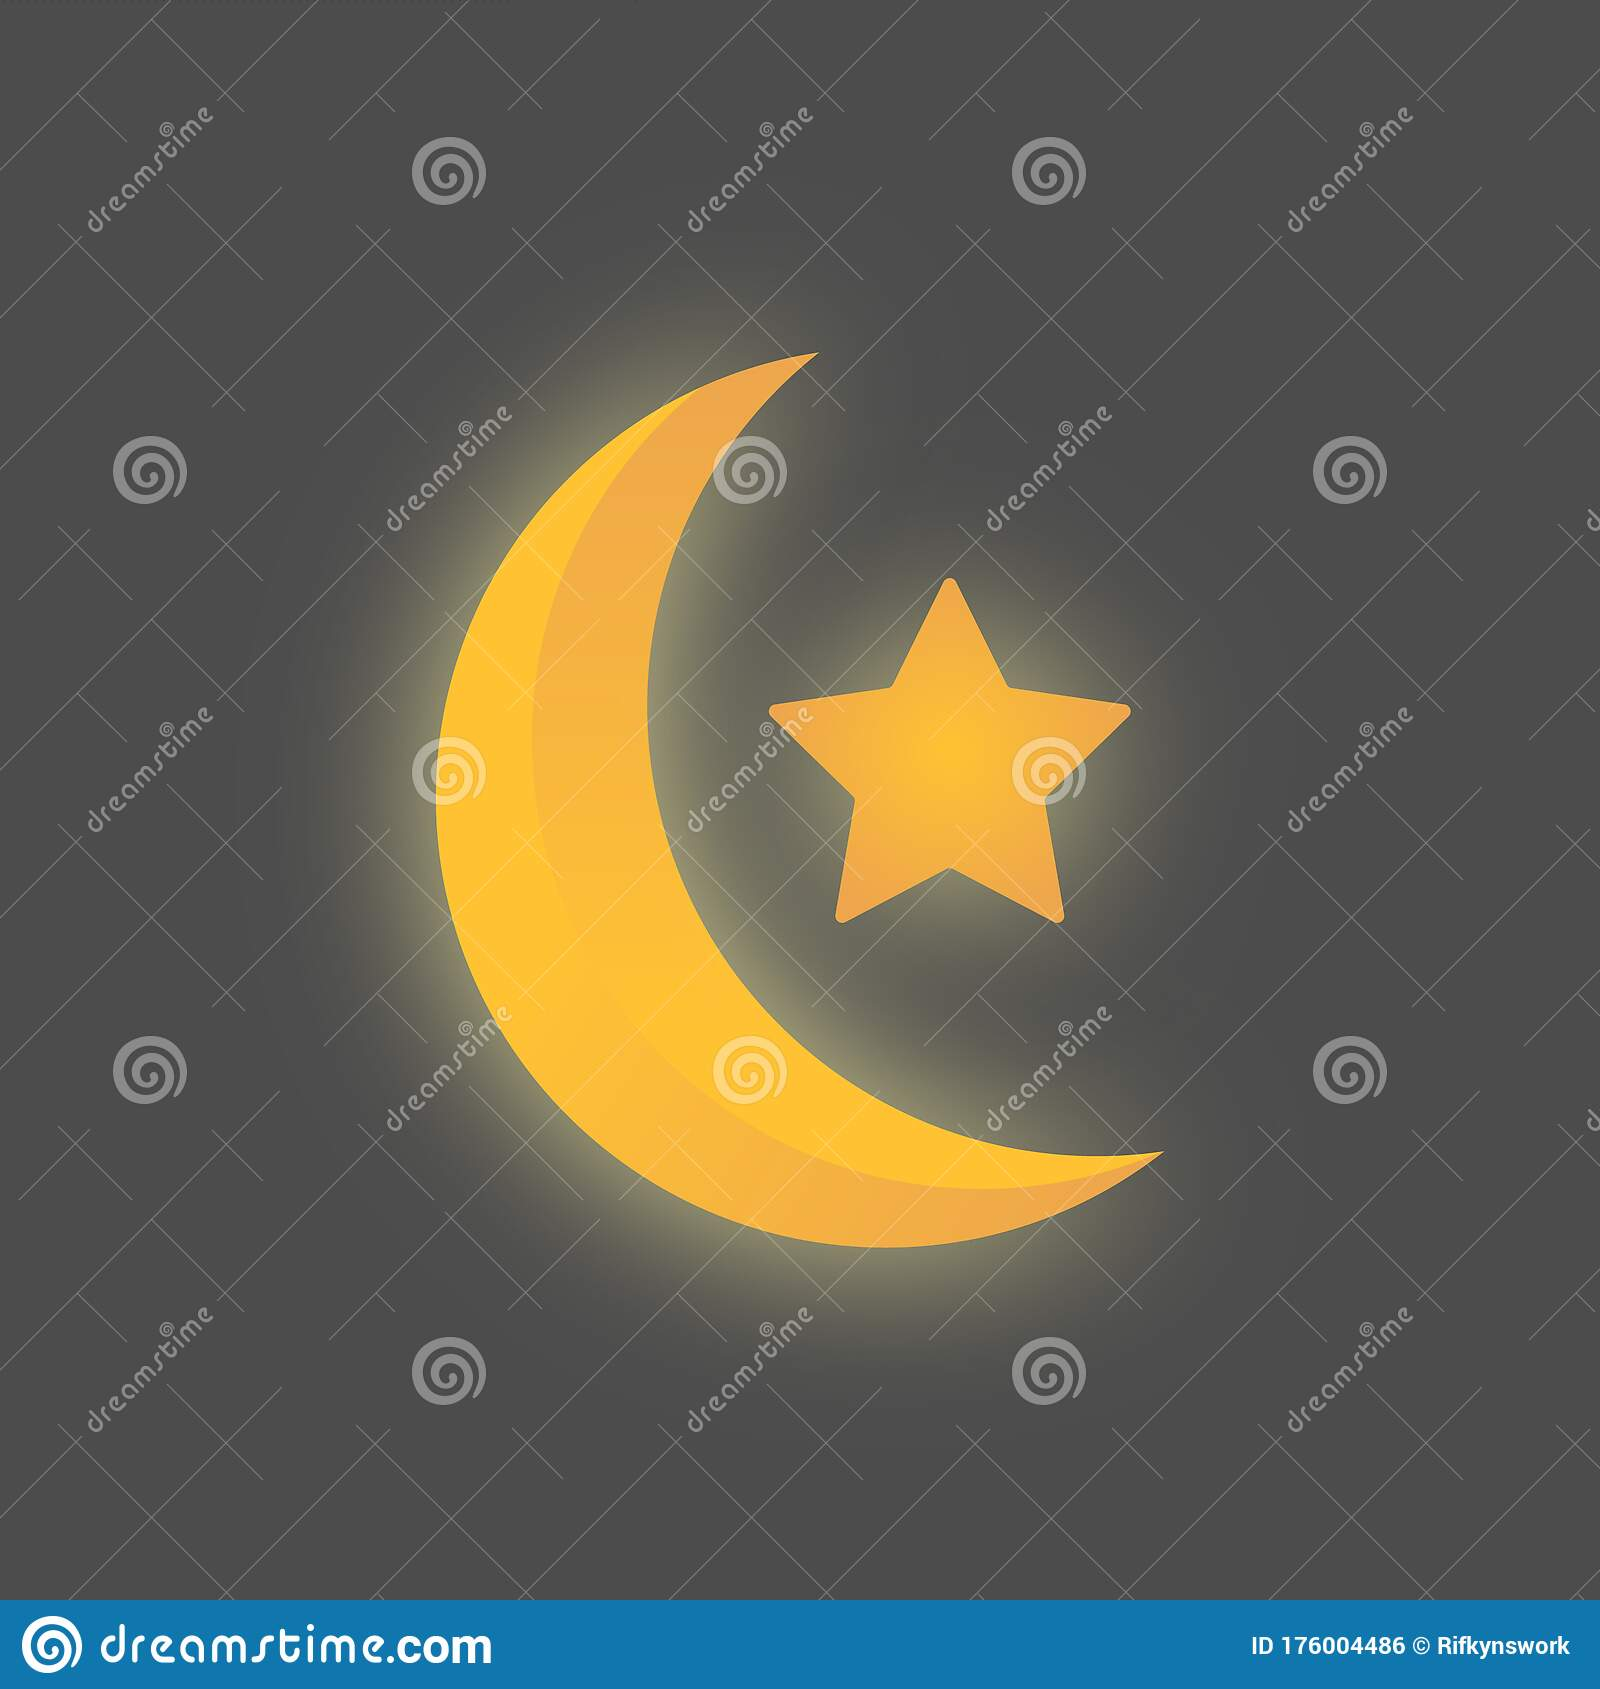 Silhouette Mosque On Starry Night Sky With Blue Glow. Shining.. Royalty  Free Cliparts, Vectors, And Stock Illustration. Image 126032936.